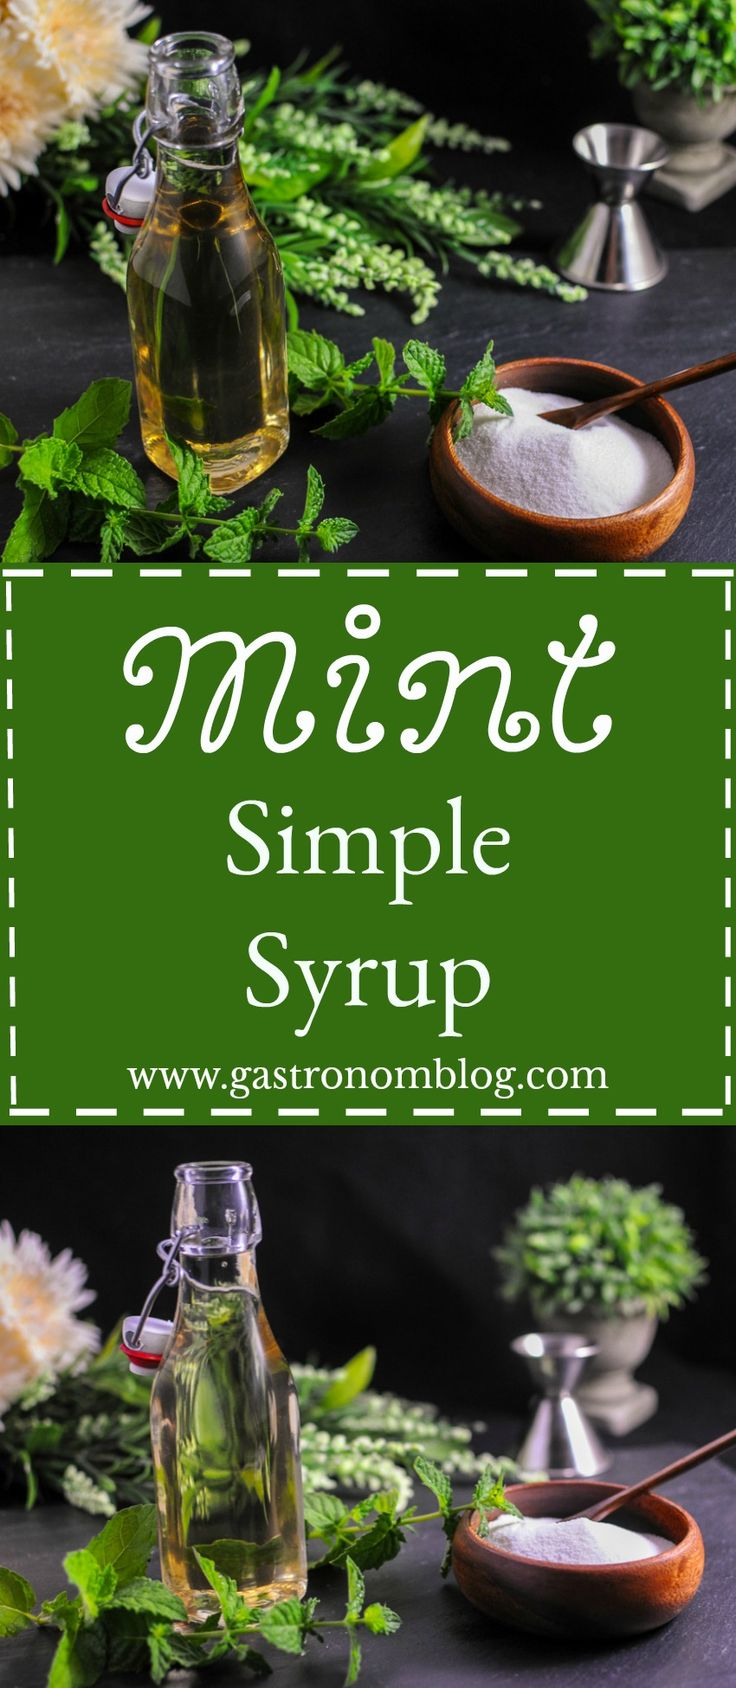 Simple syrups are a staple in cocktail making for us, we love them in our craft cocktails, and especially just out of the garden! This mint simple is perfect for mojitos or a mint julep! Cheers!